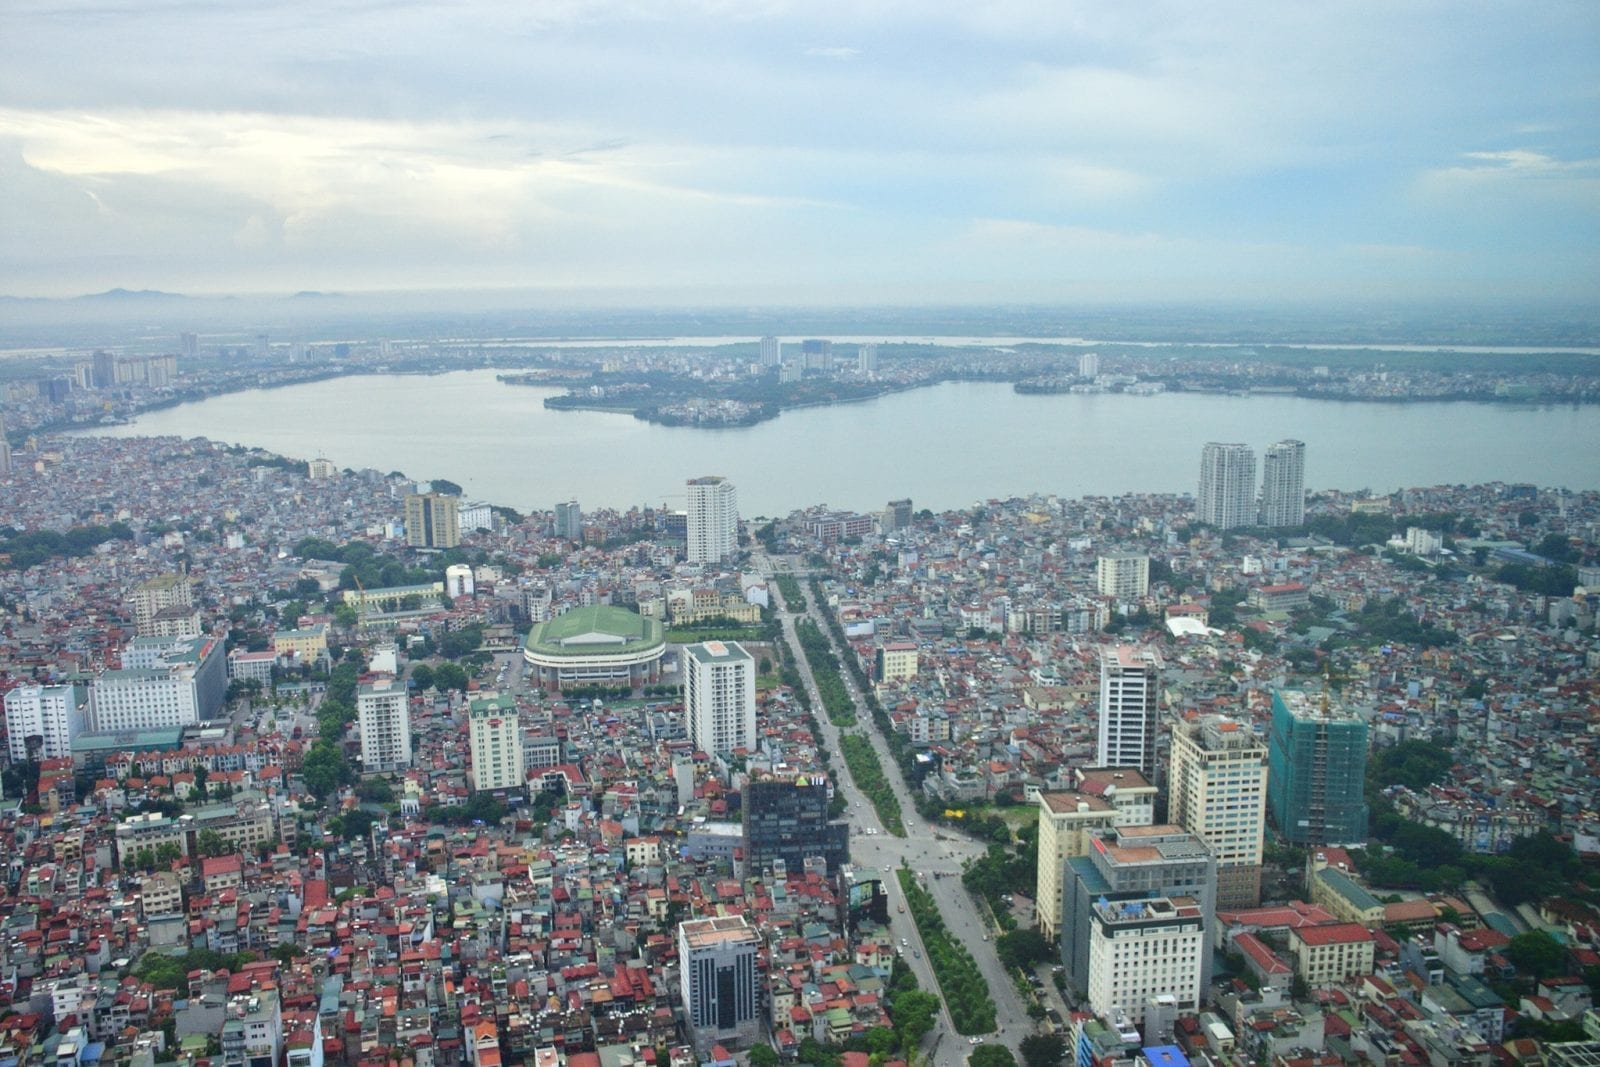 Image of the view from Lotte Center Hanoi in Vietnam